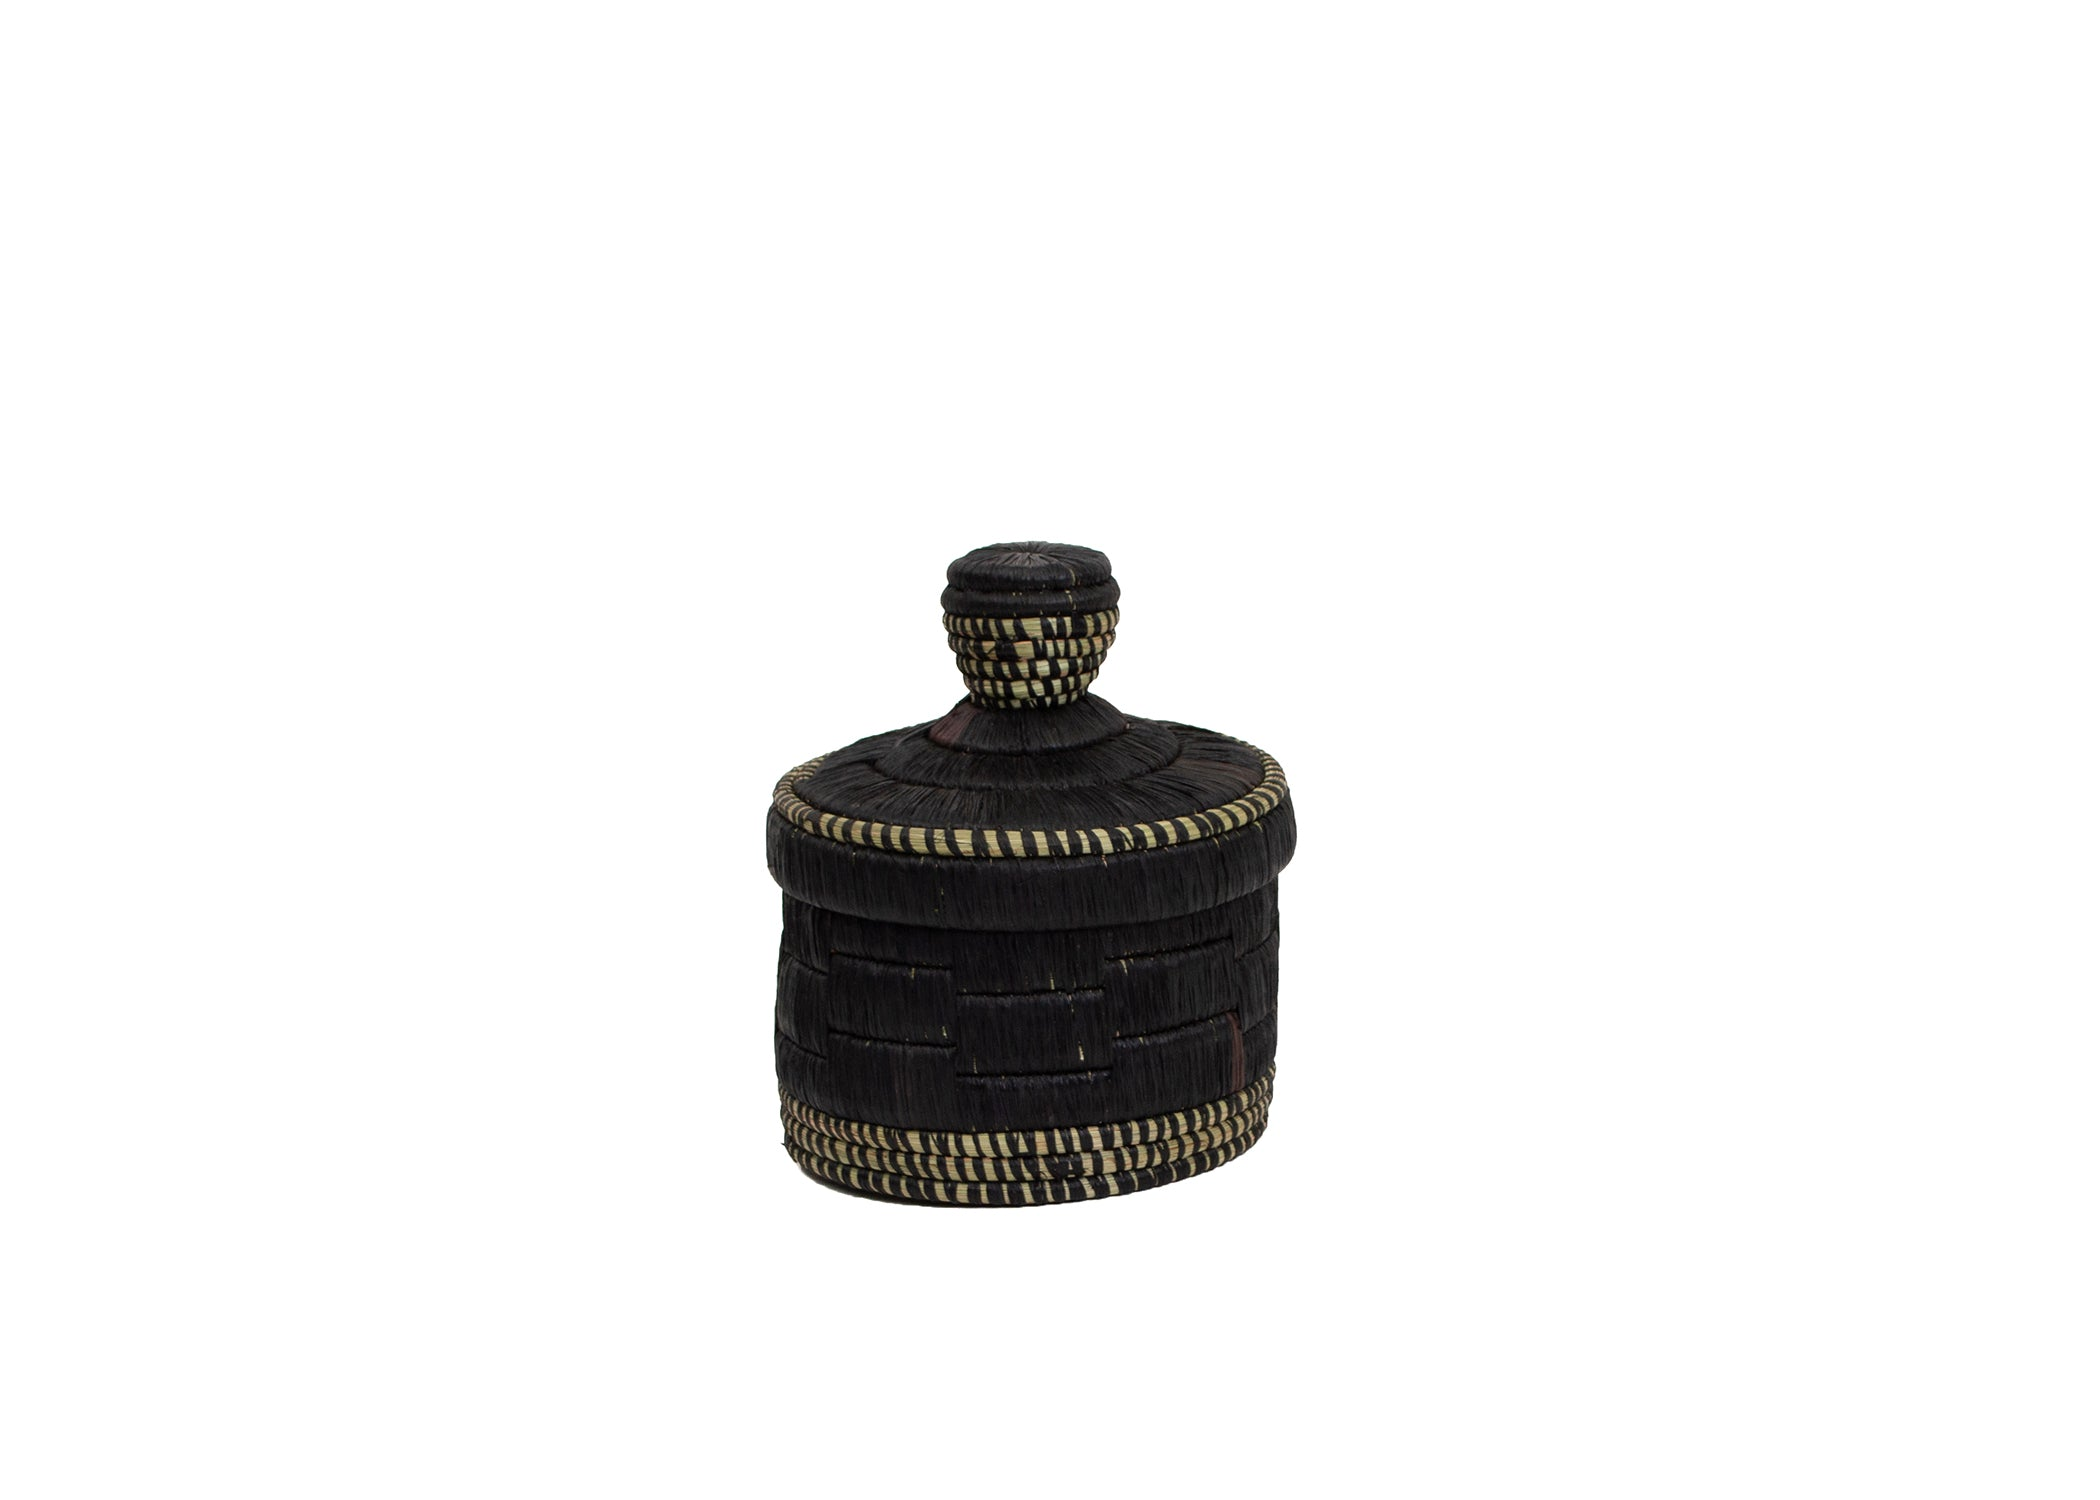 Short Black Raffia Box - KAZI - Artisan made high quality home decor and wall art